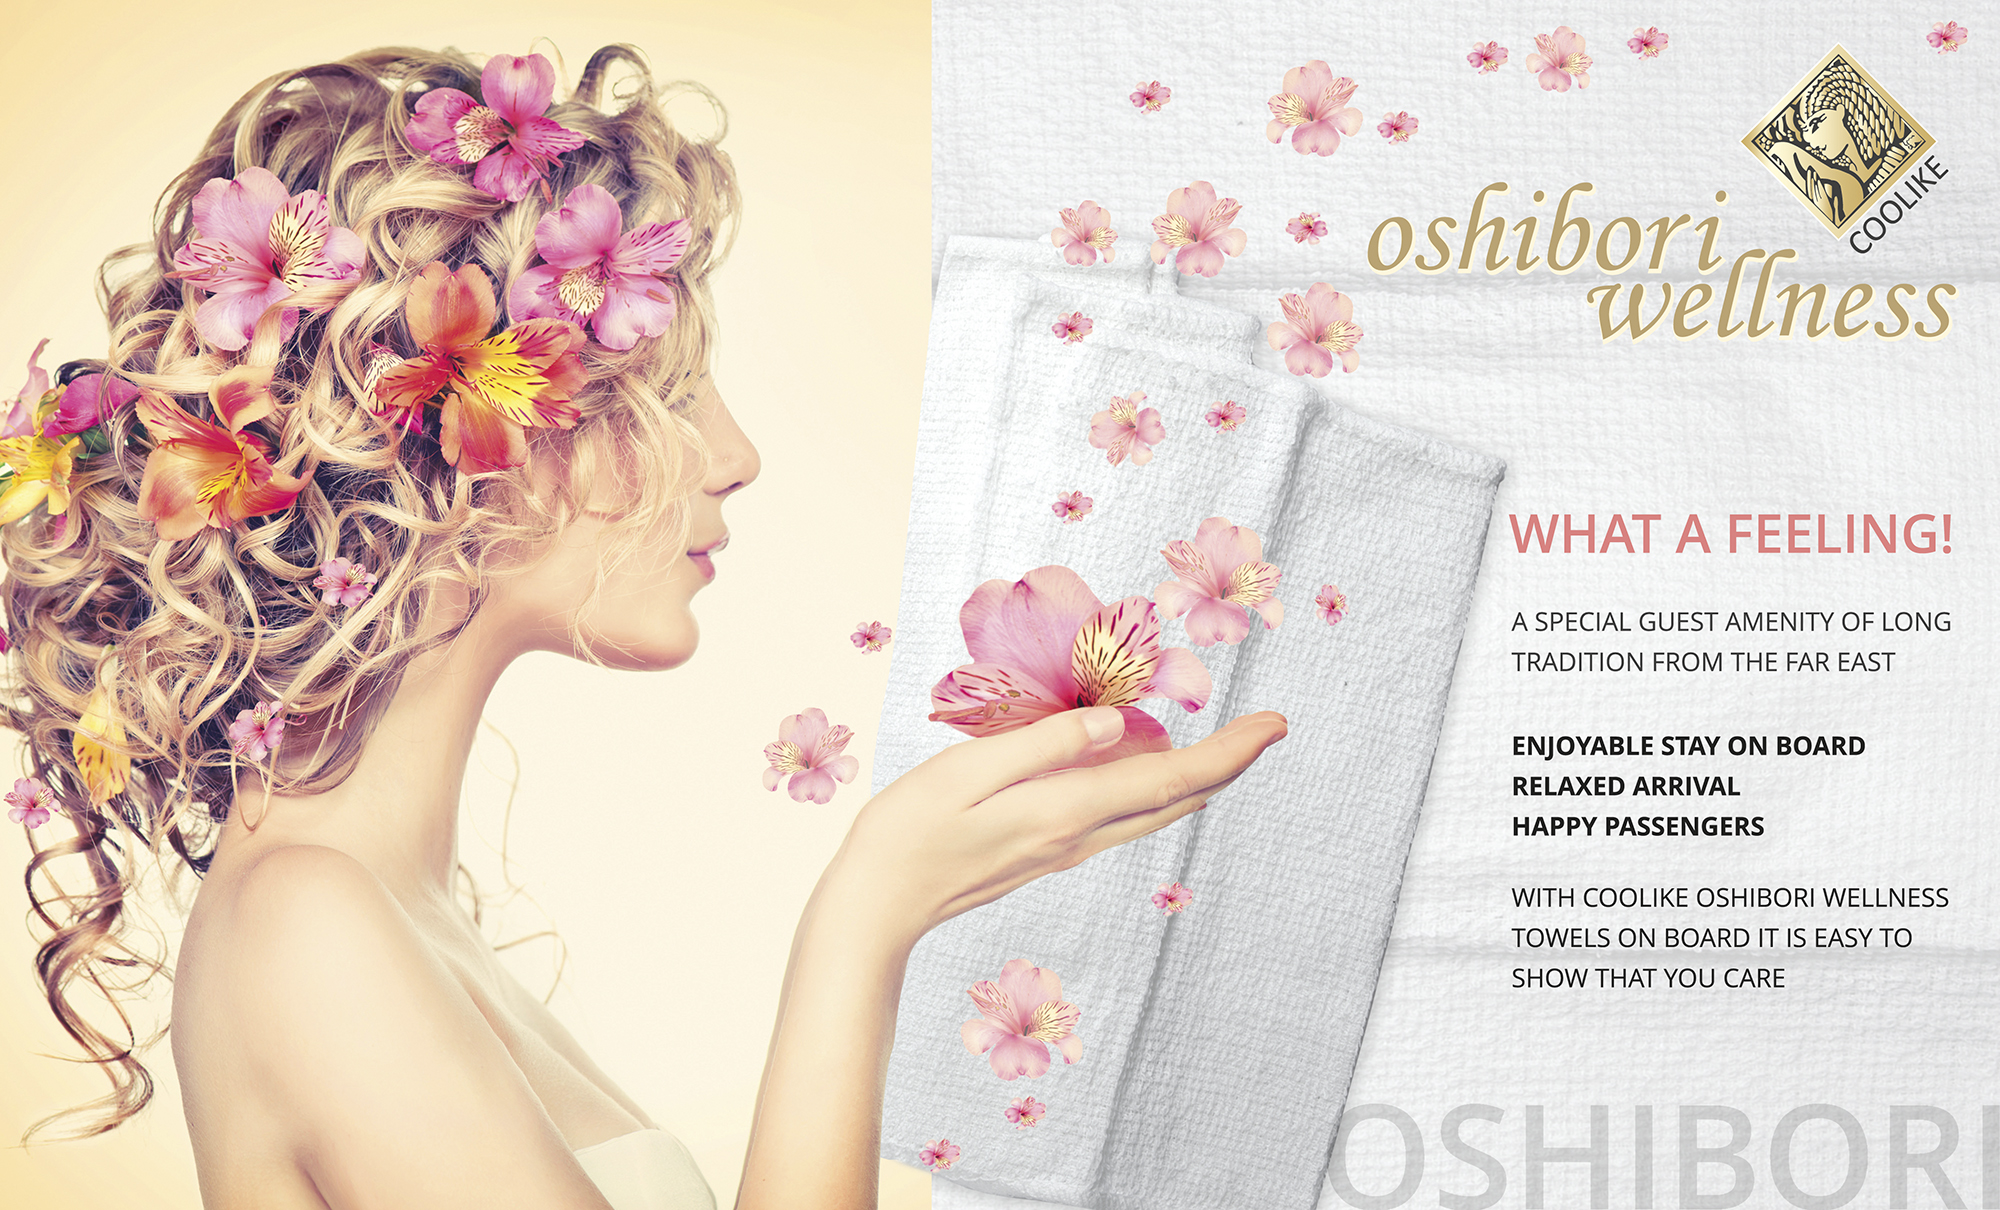 Oshibori wellness towels made from natural cotton, pre-moistened well-being towels, refreshing towels, wet wipes, hot towels, terry towels single packed, terry towel rolls, Oshibori towels, airline towels, airline hot towels, Airline oshibori, airline oshibori wellness towels, airline wet towels, airline terry towels, airline hot towels